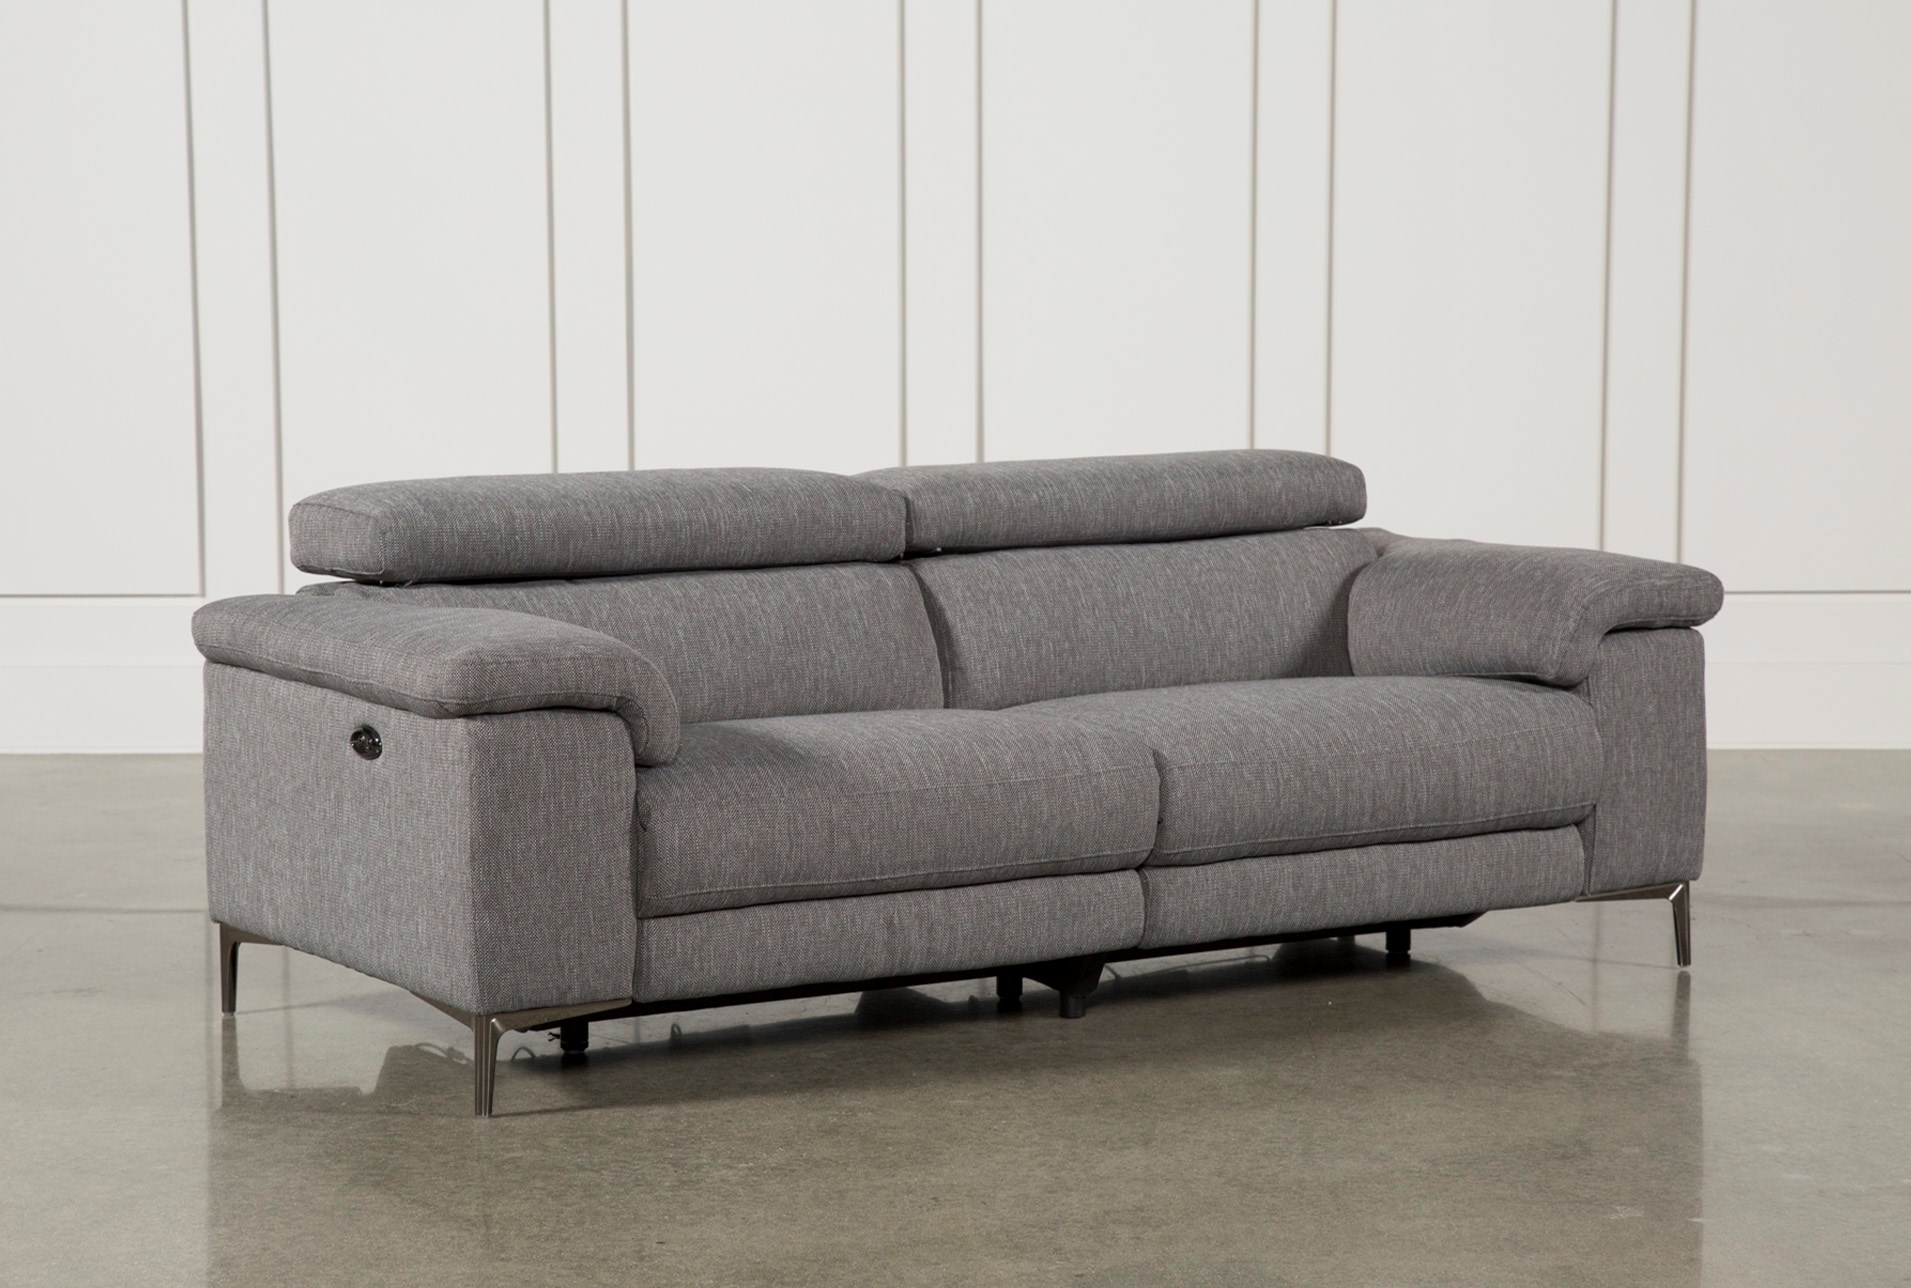 Talin grey power reclining sofa w usb qty 1 has been successfully added to your cart